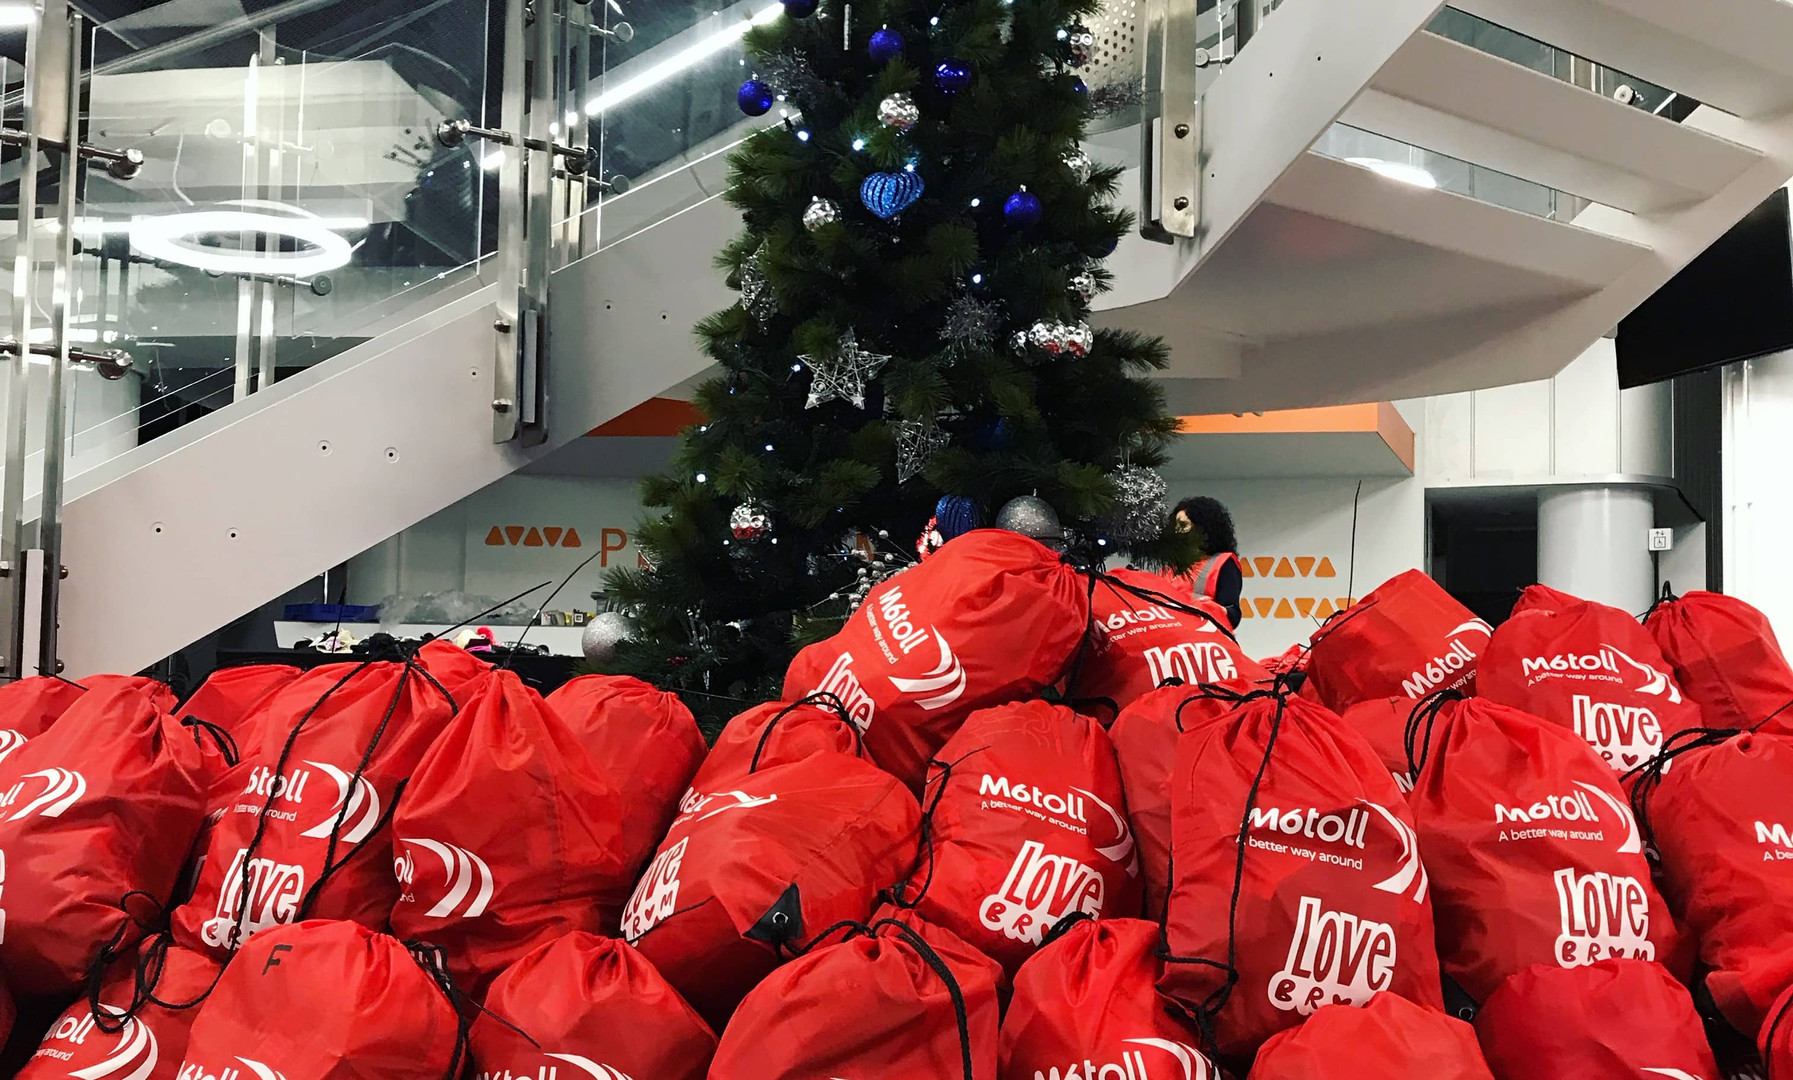 LoveBrum launches Bags For Brummies campaign to help the homeless this Christmas